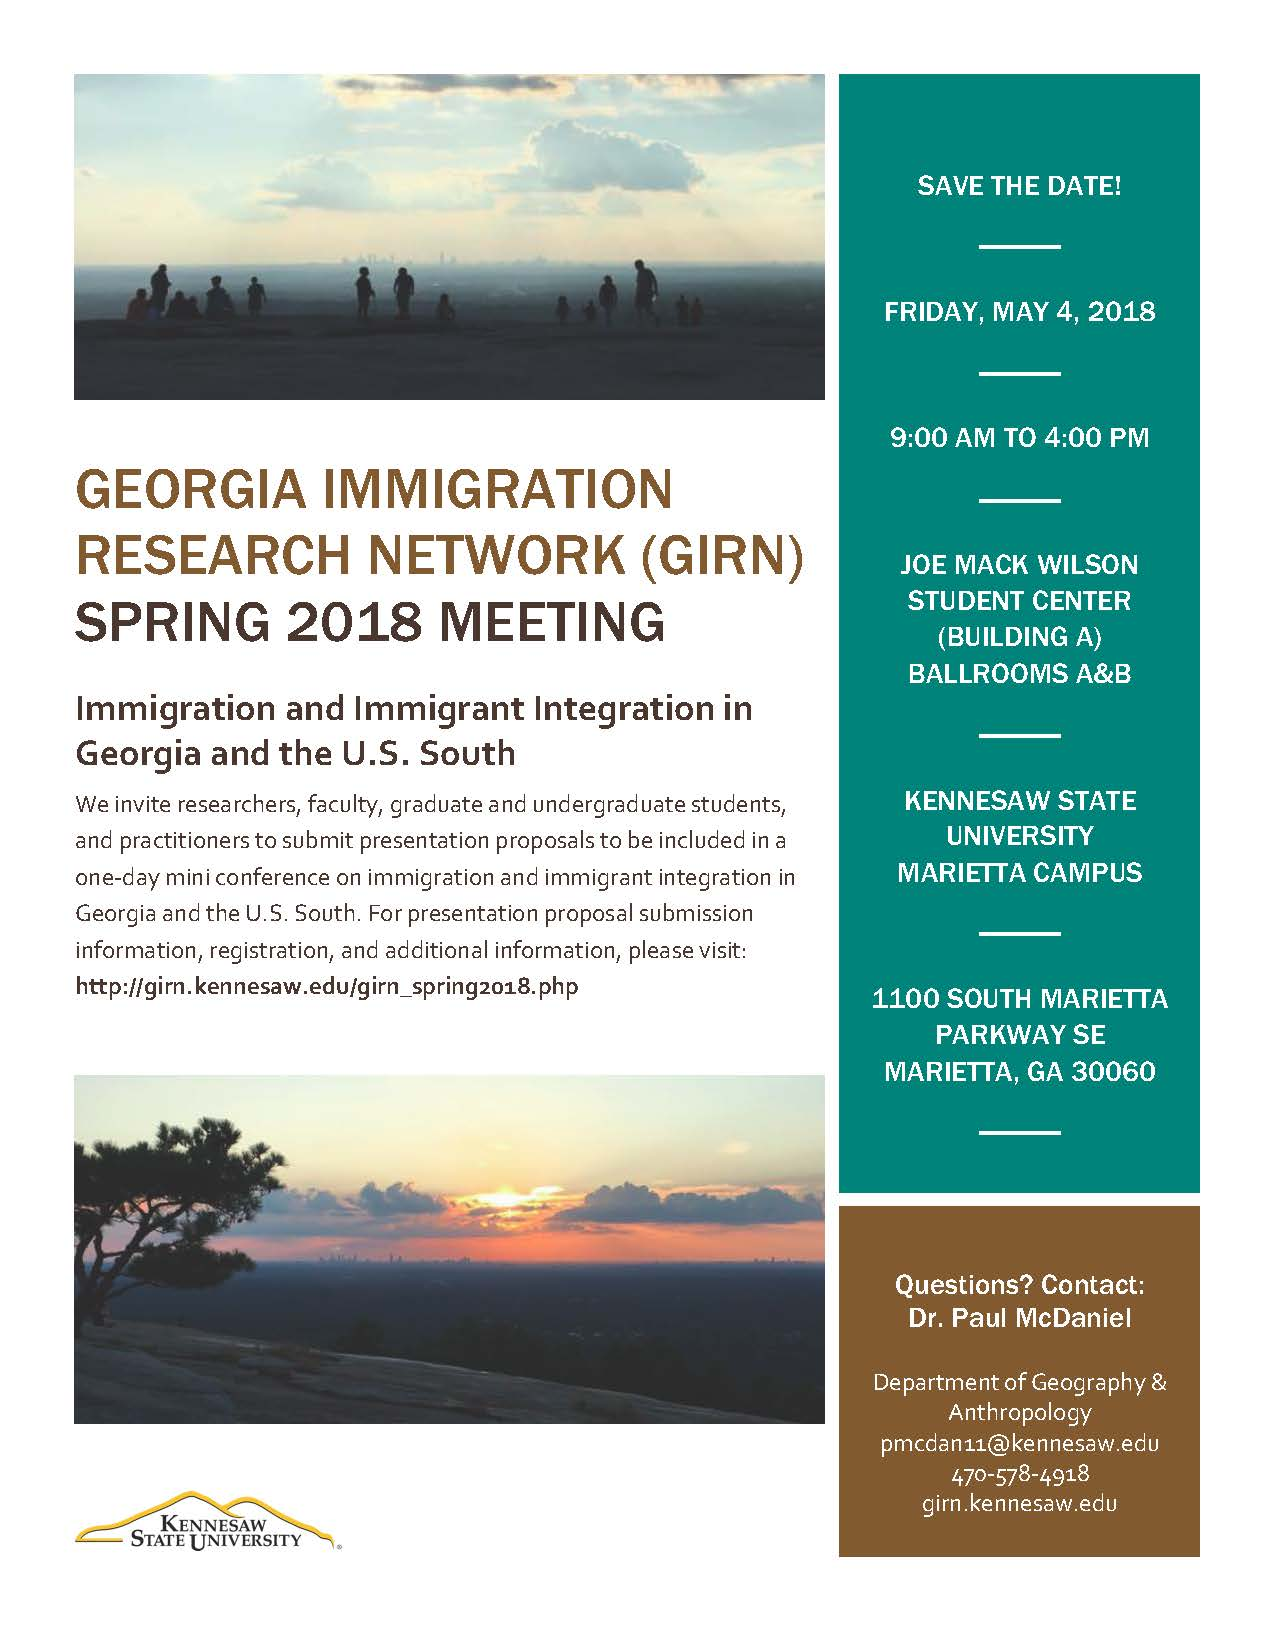 Georgia Immigration Research Network GIRN 2018 Flyer